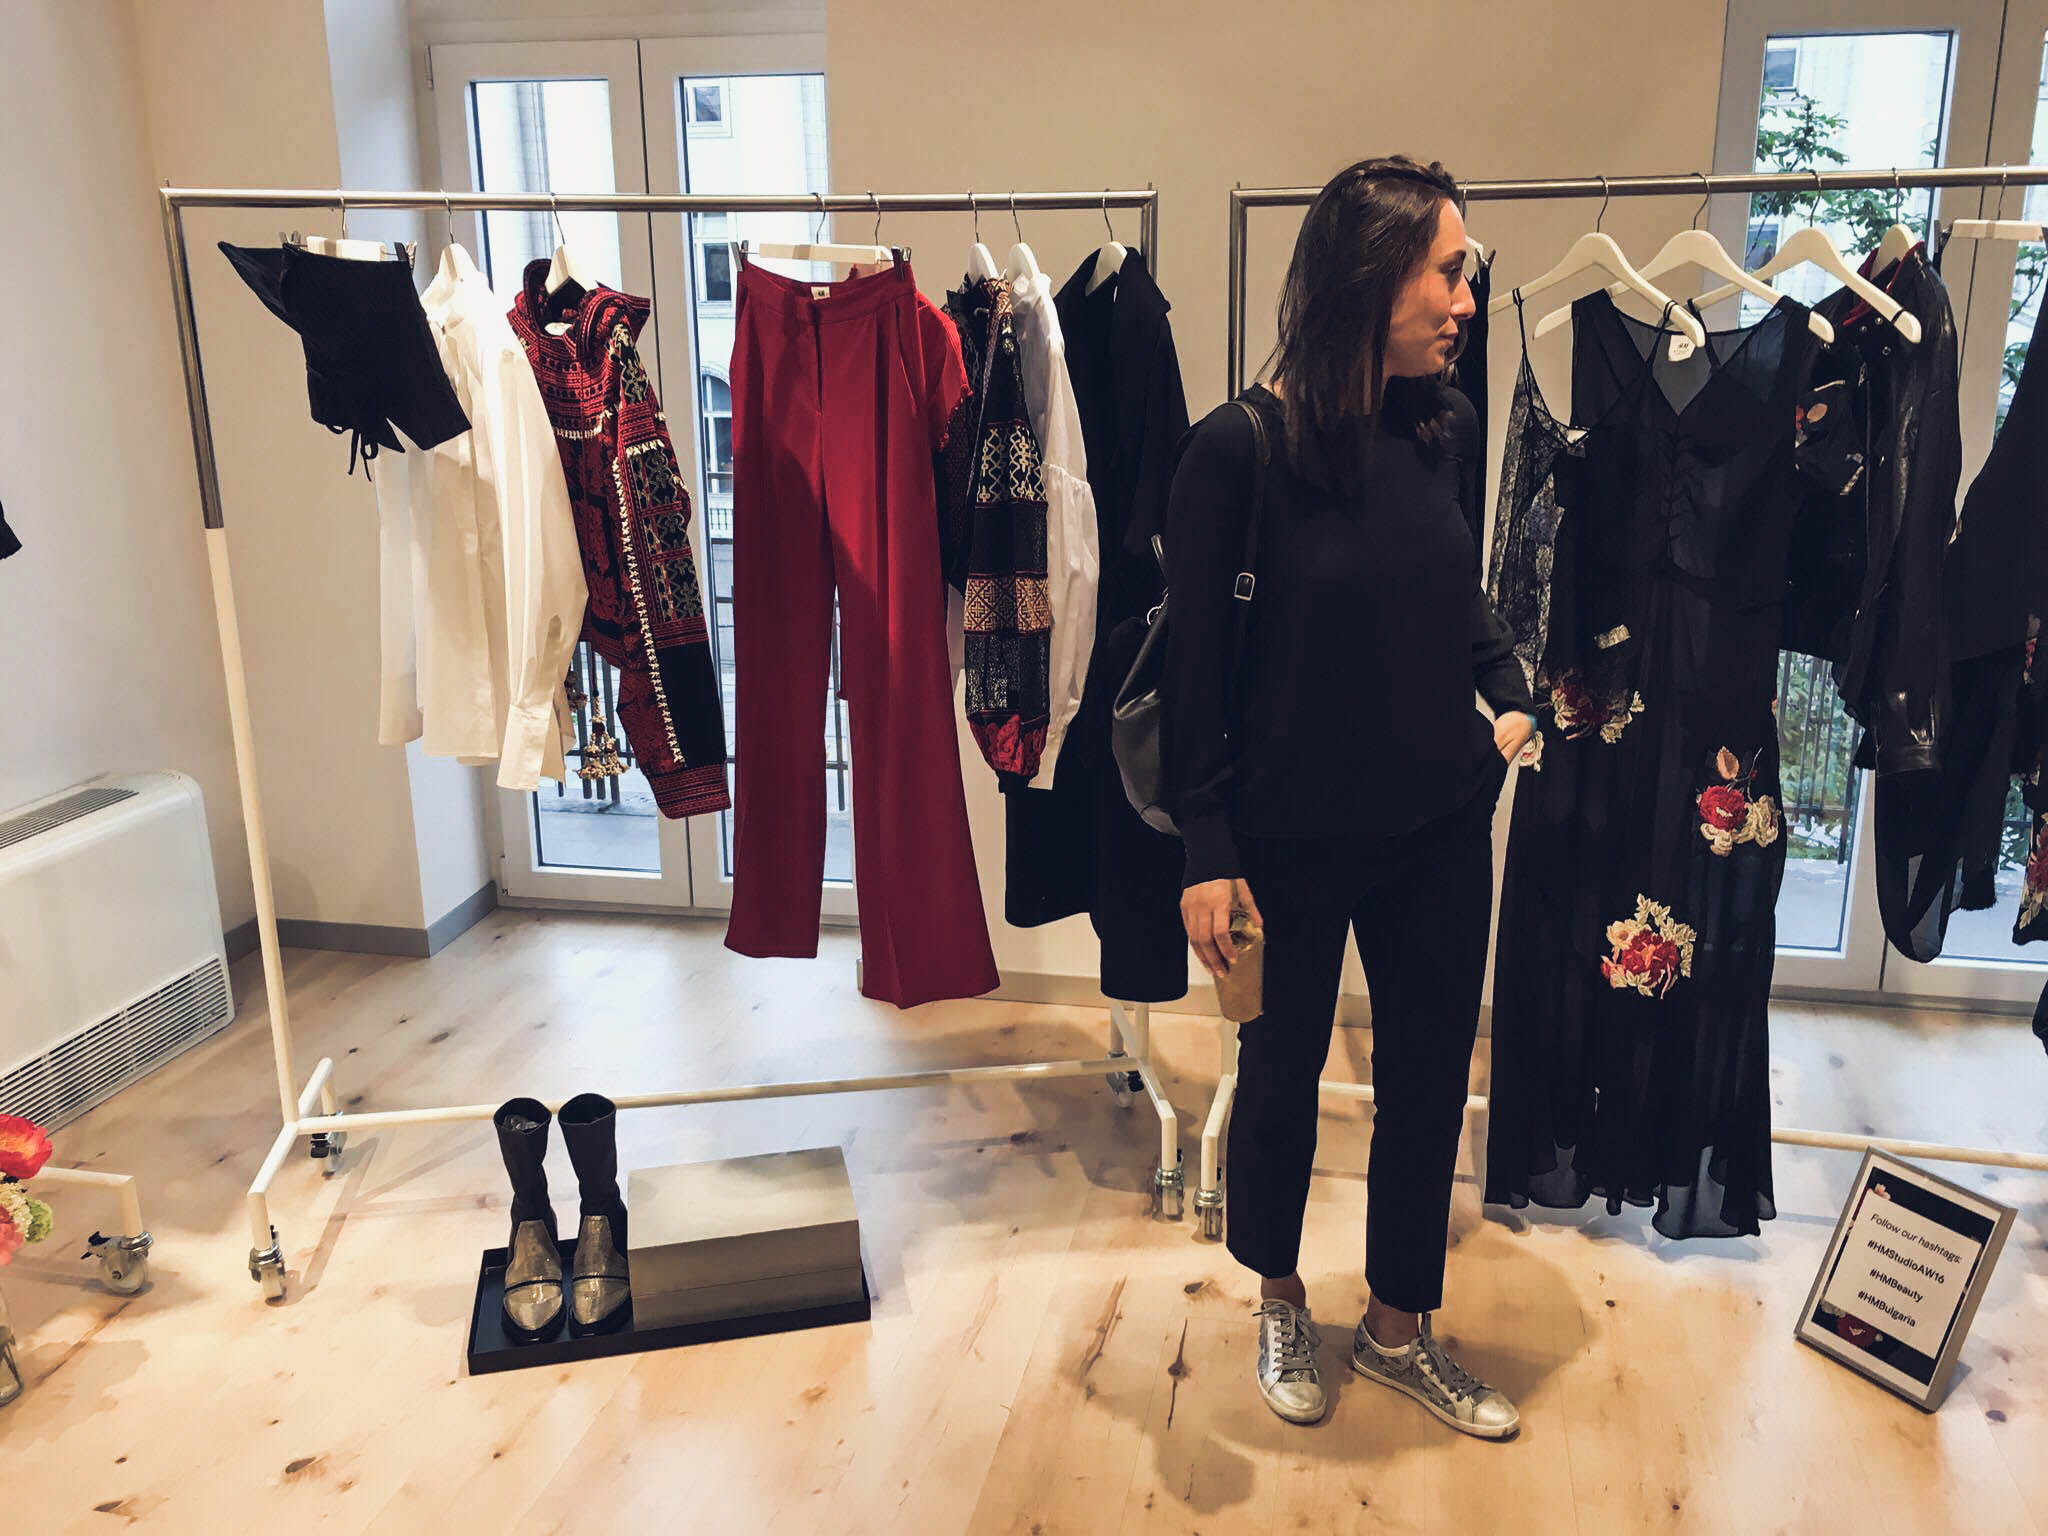 H&M Studio AW16 launch event by Bulgarian fashion blogger Quite a Looker